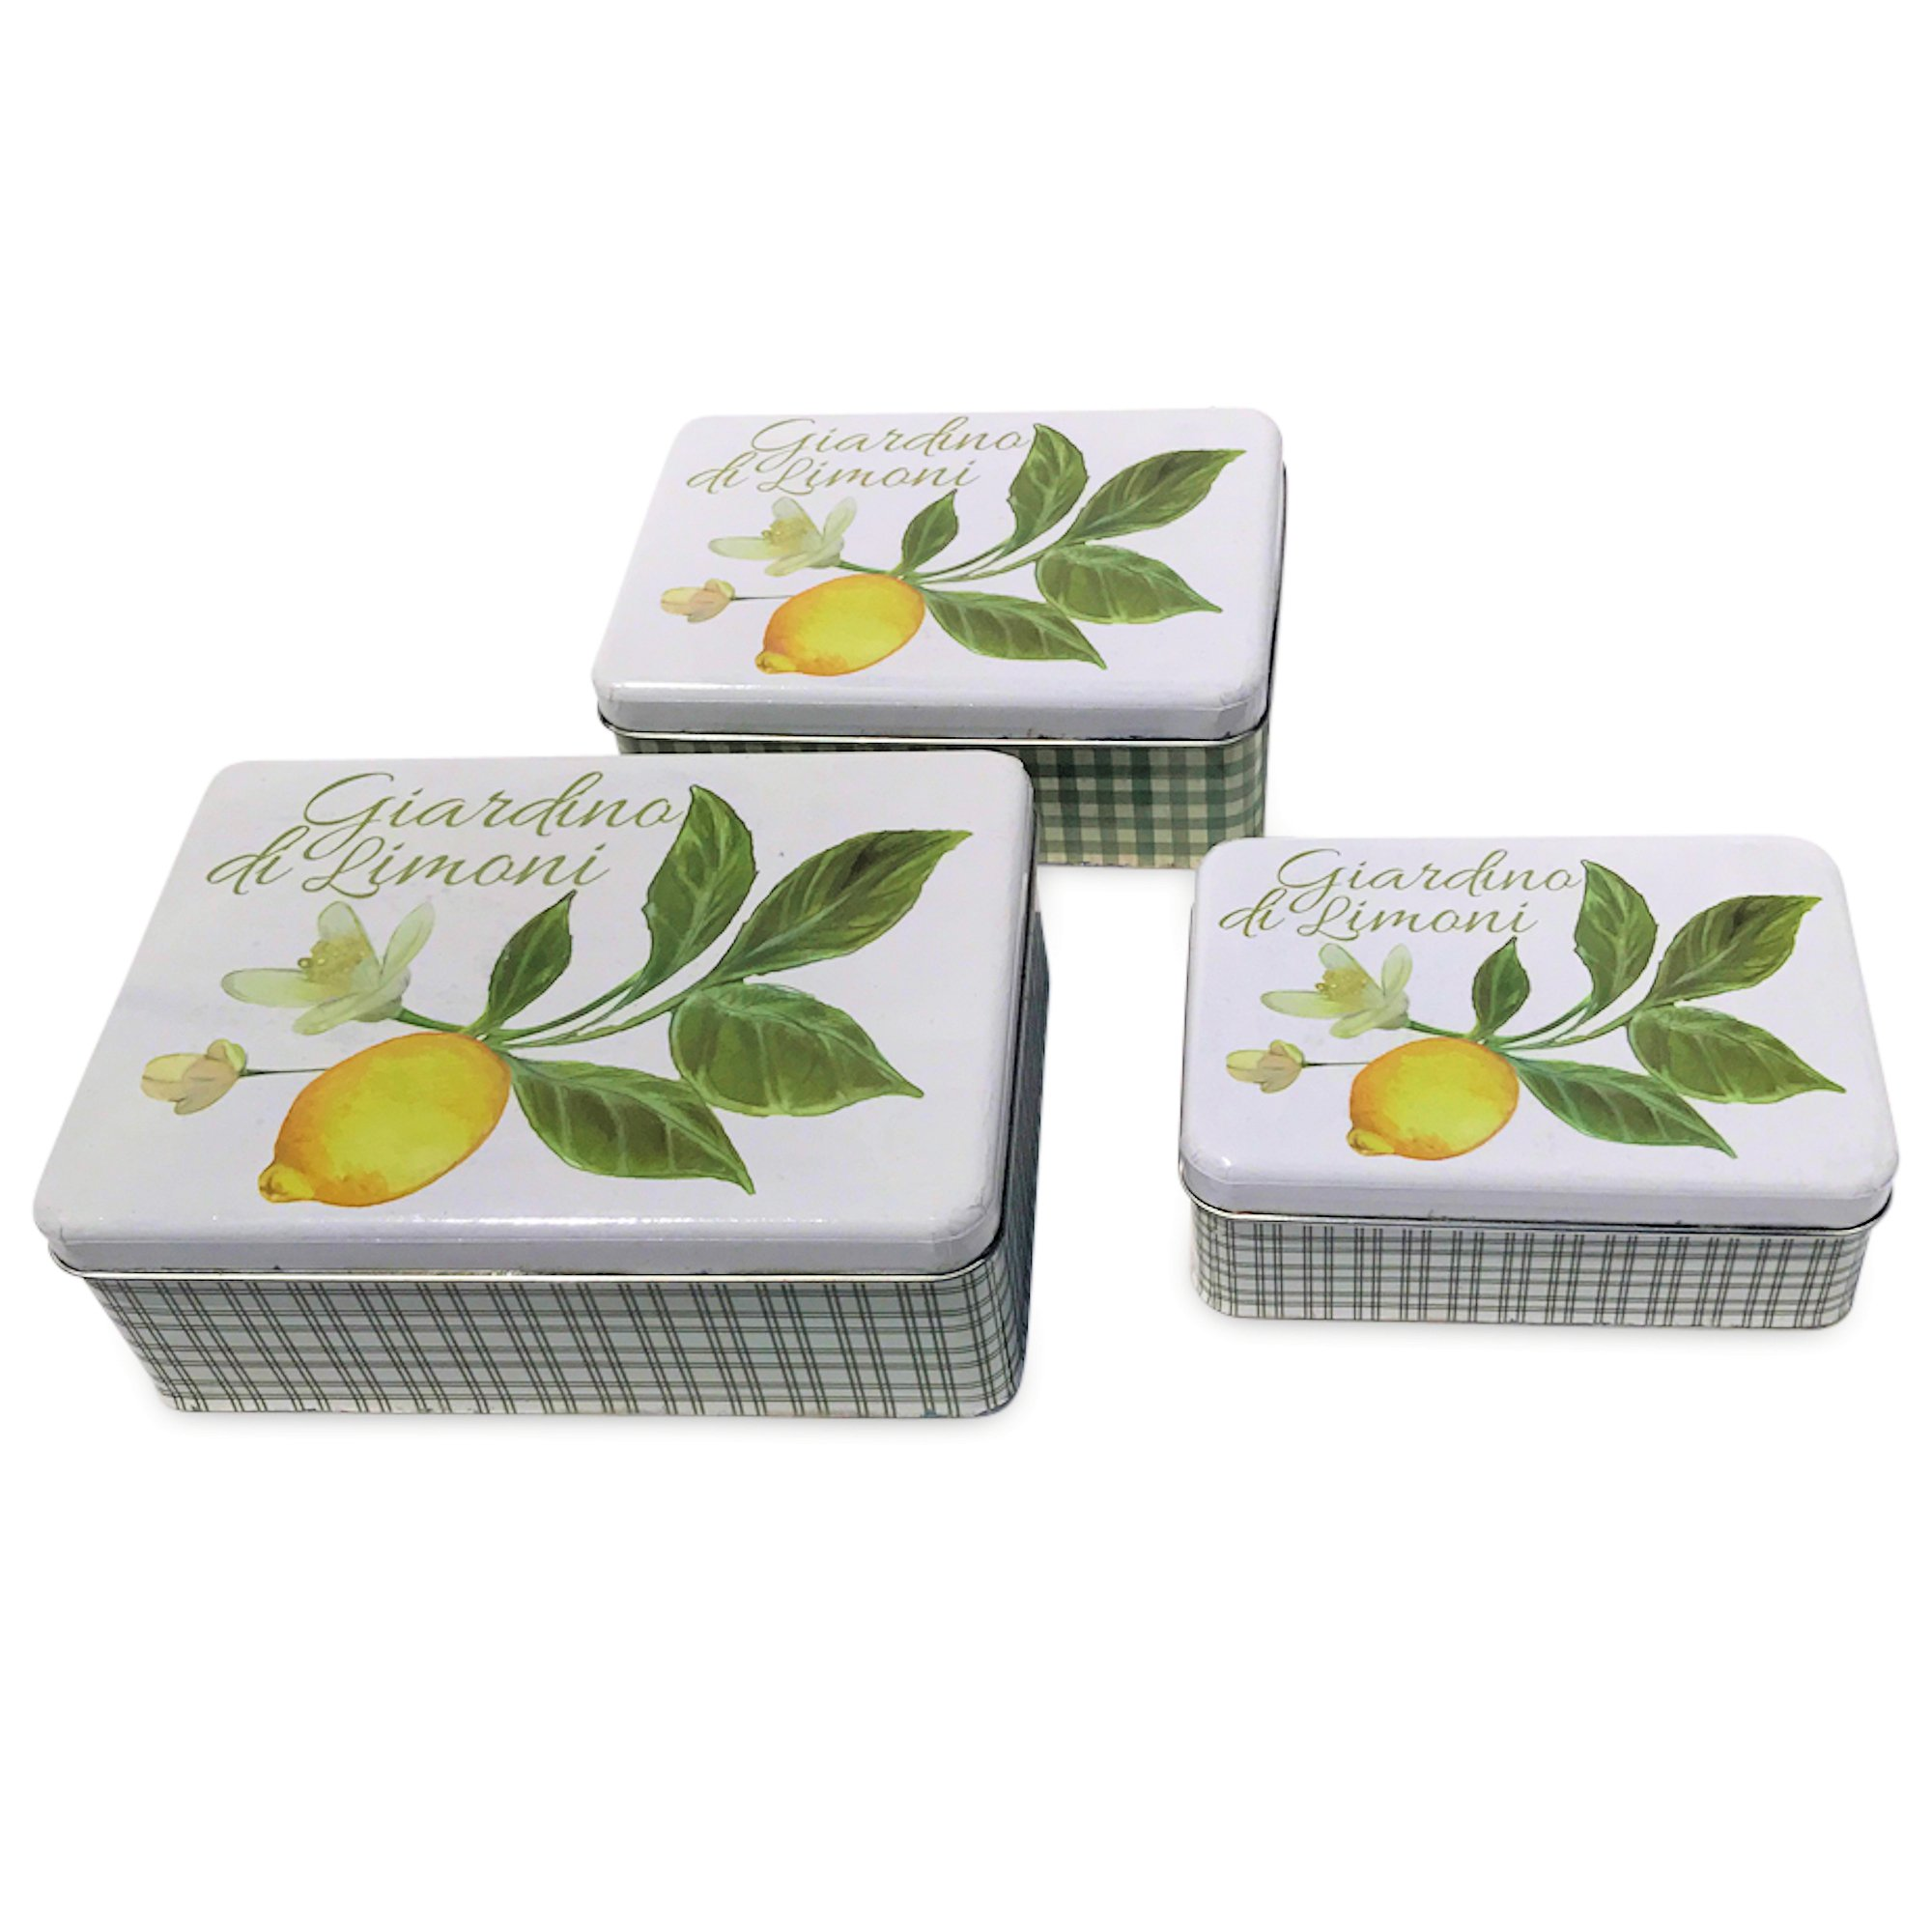 Whole House Worlds The Italian Garden Lemon with Blossoms and Leaves Cookie Tins, Set of 3 Boxes with Lids,Tin Plate, Rustic Vintage Style, Various Sizes, By